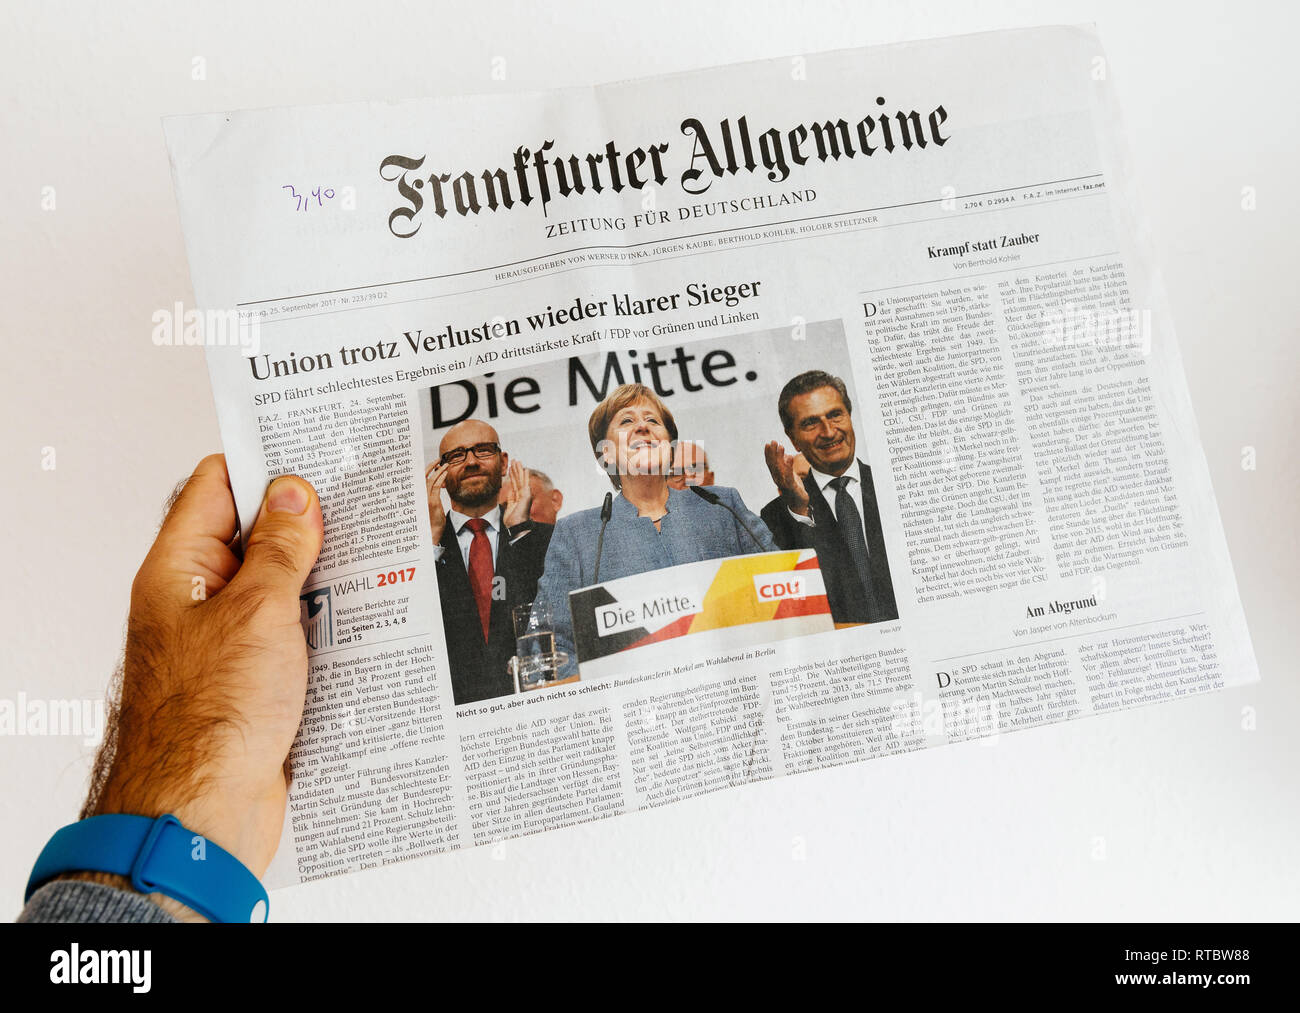 PARIS, FRANCE - SEP 25, 2017: International newspaper with portrait of Angela Merkel after election in Germany for the Chancellor of Germany, the head of the federal government - Stock Image